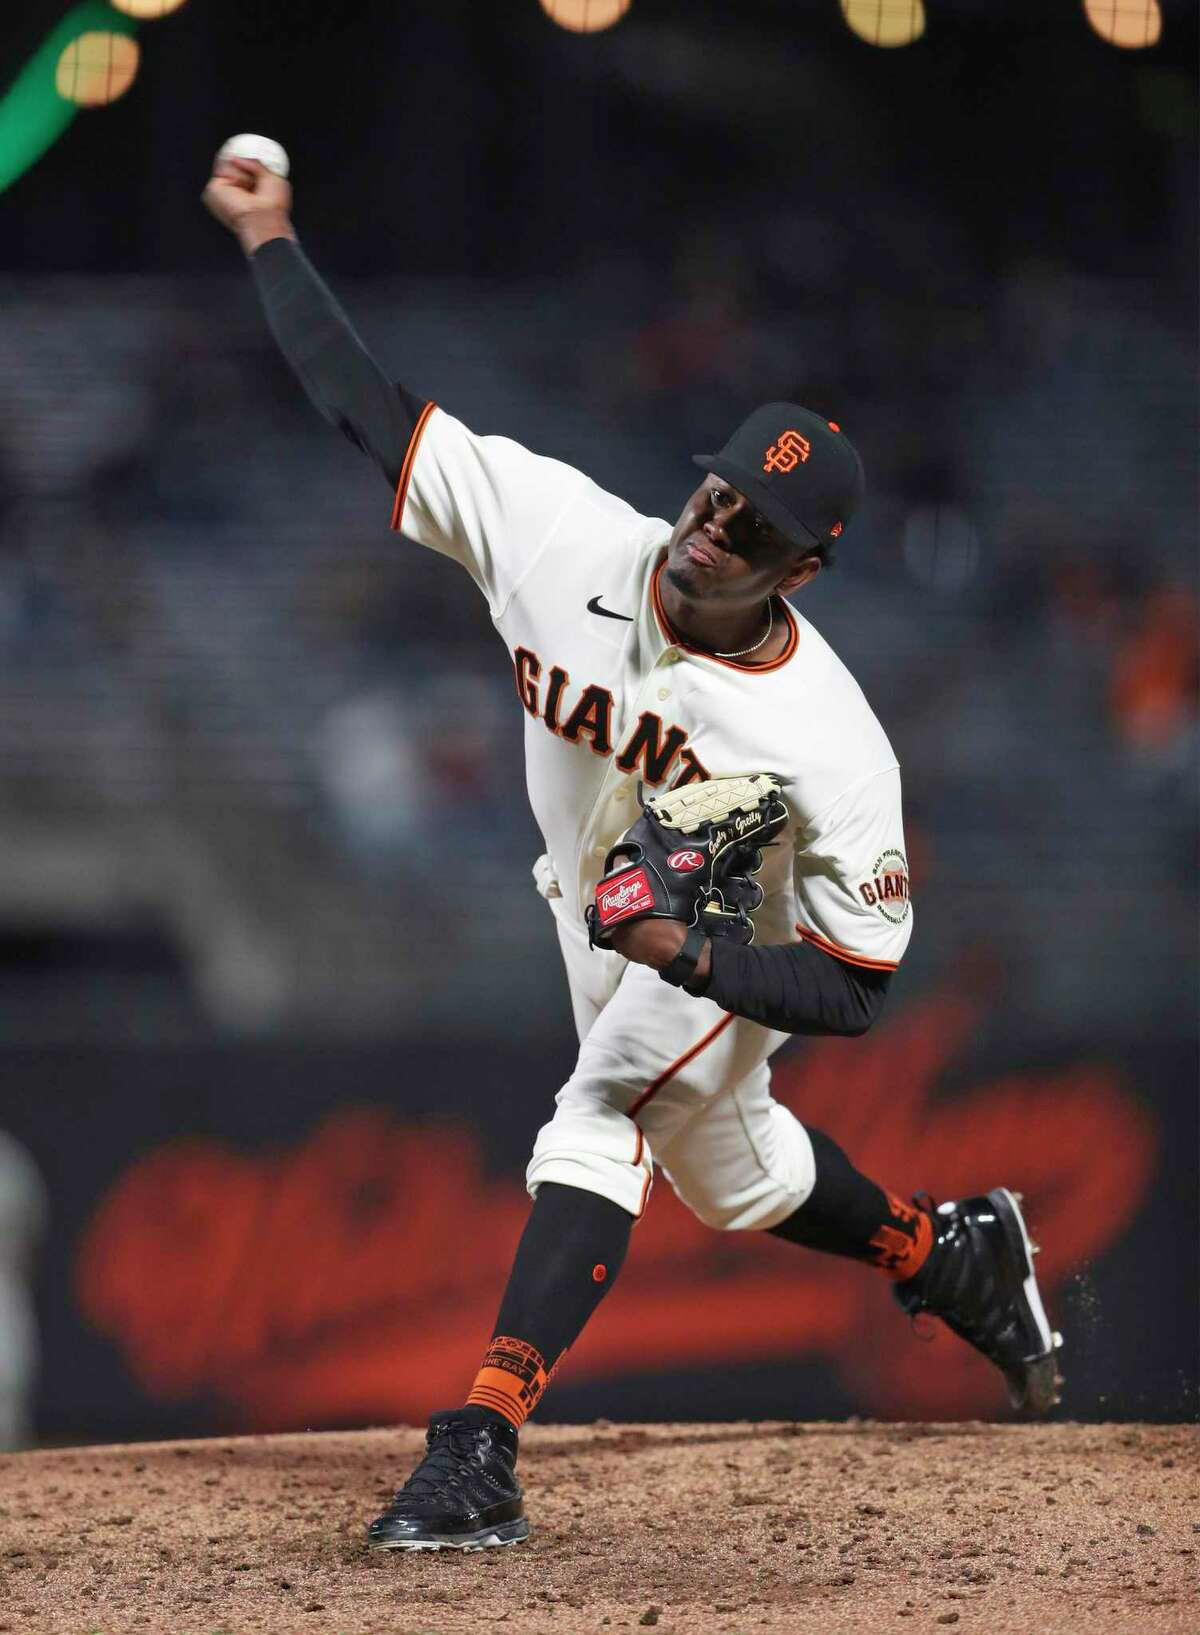 San Francisco Giants' Gregory Santos pitches while making his major league debut against Miami Marlins in 6th inning of MLB game at Oracle Park in San Francisco, Calif., on Thursday, April 22, 2021. Santos struck out the first two batters he faced while retiring the side in order in the top of the 6th inning.